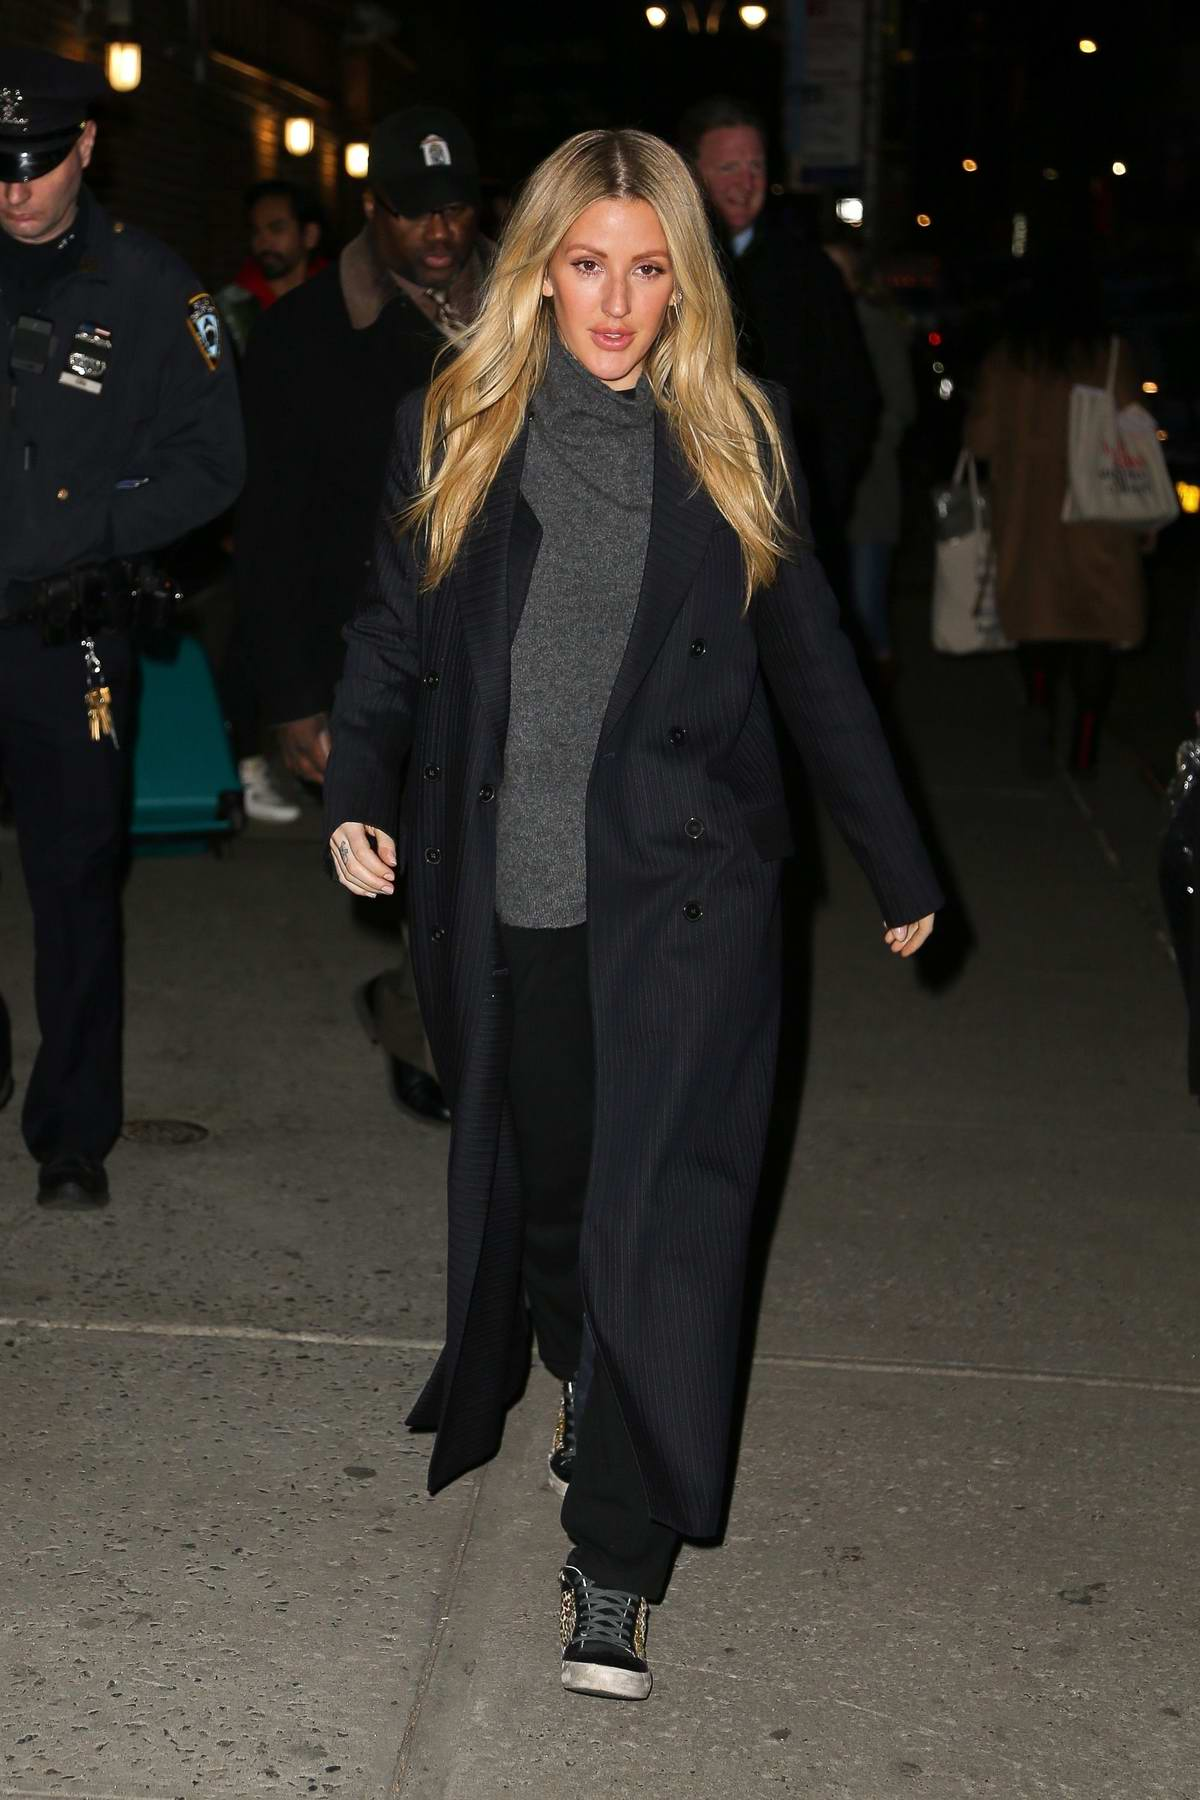 Ellie Goulding arrives for her appearance on 'The Late Show with Stephen Colbert' in New York City